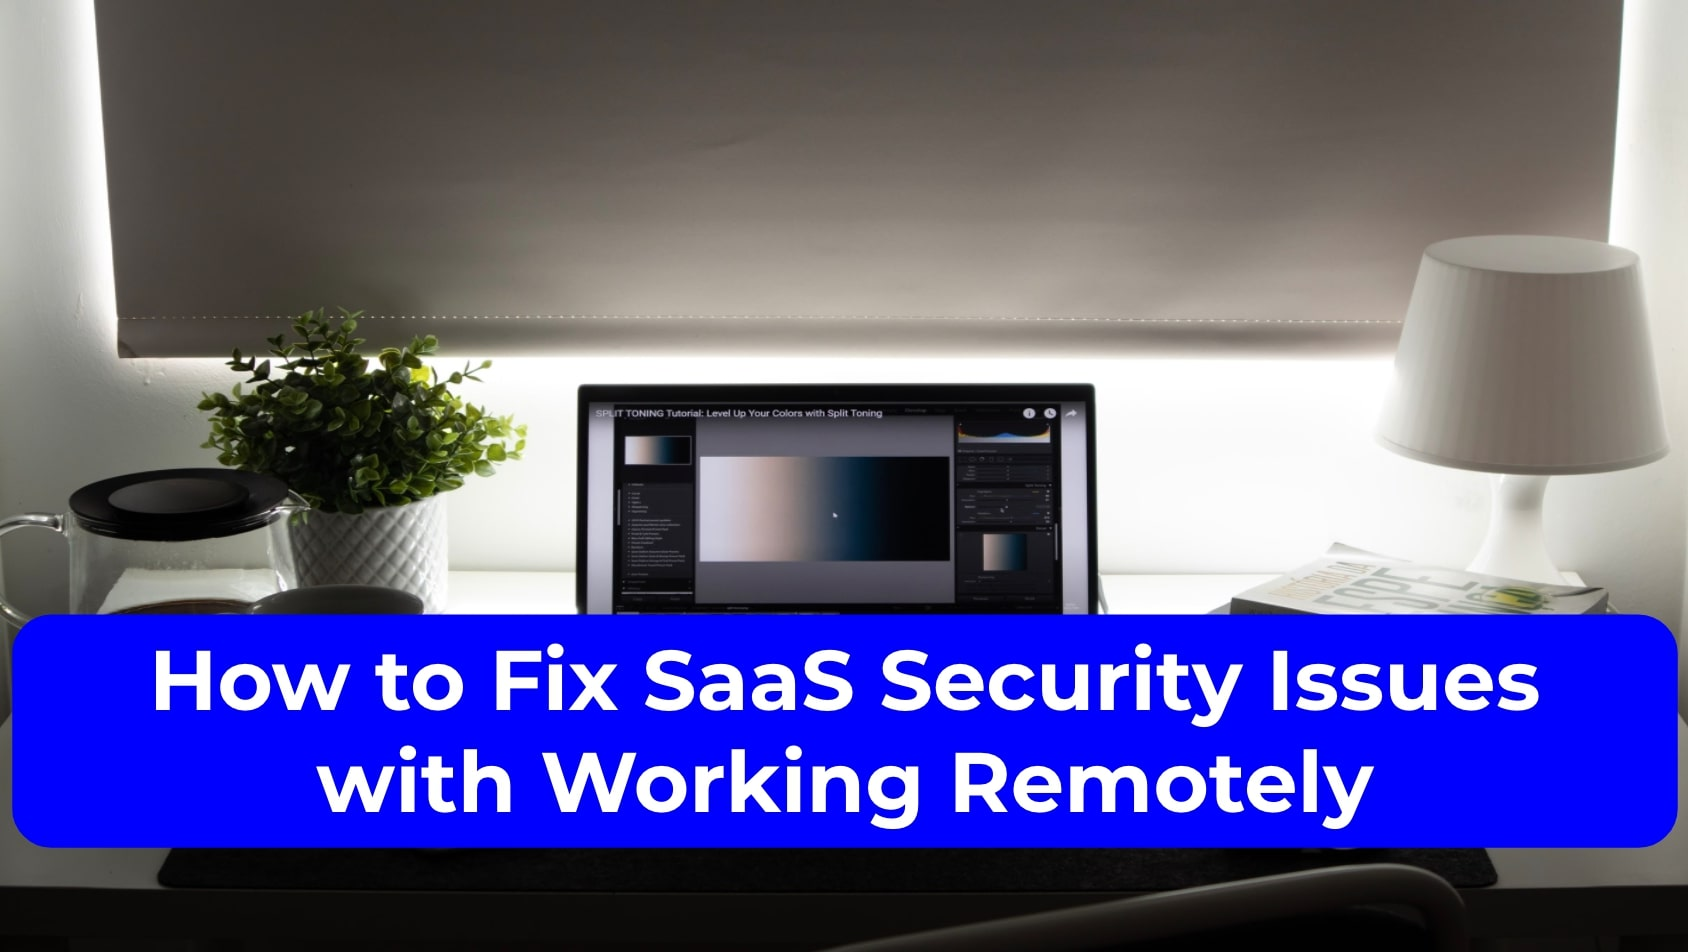 How to Fix SaaS Security Issues with Working Remotely